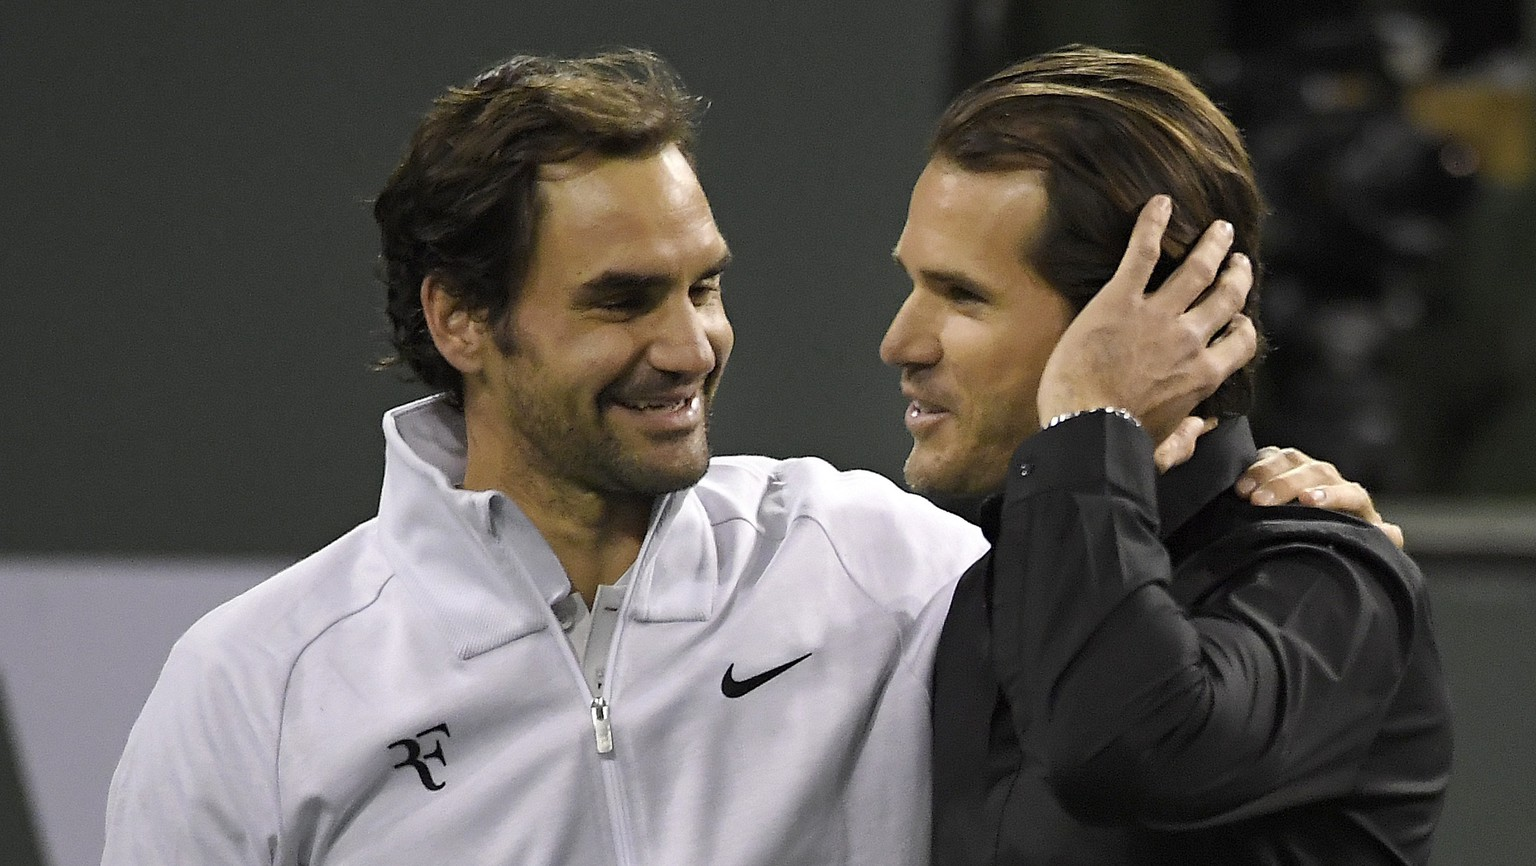 Roger Federer, left, of Switzerland, greets Tommy Haas, of Germany, after Haas announced his retirement following Federer's quarterfinal match against Chung Hyeon at the BNP Paribas Open tennis tournament Thursday, March 15, 2018, in Indian Wells, Calif. (AP Photo/Mark J. Terrill)